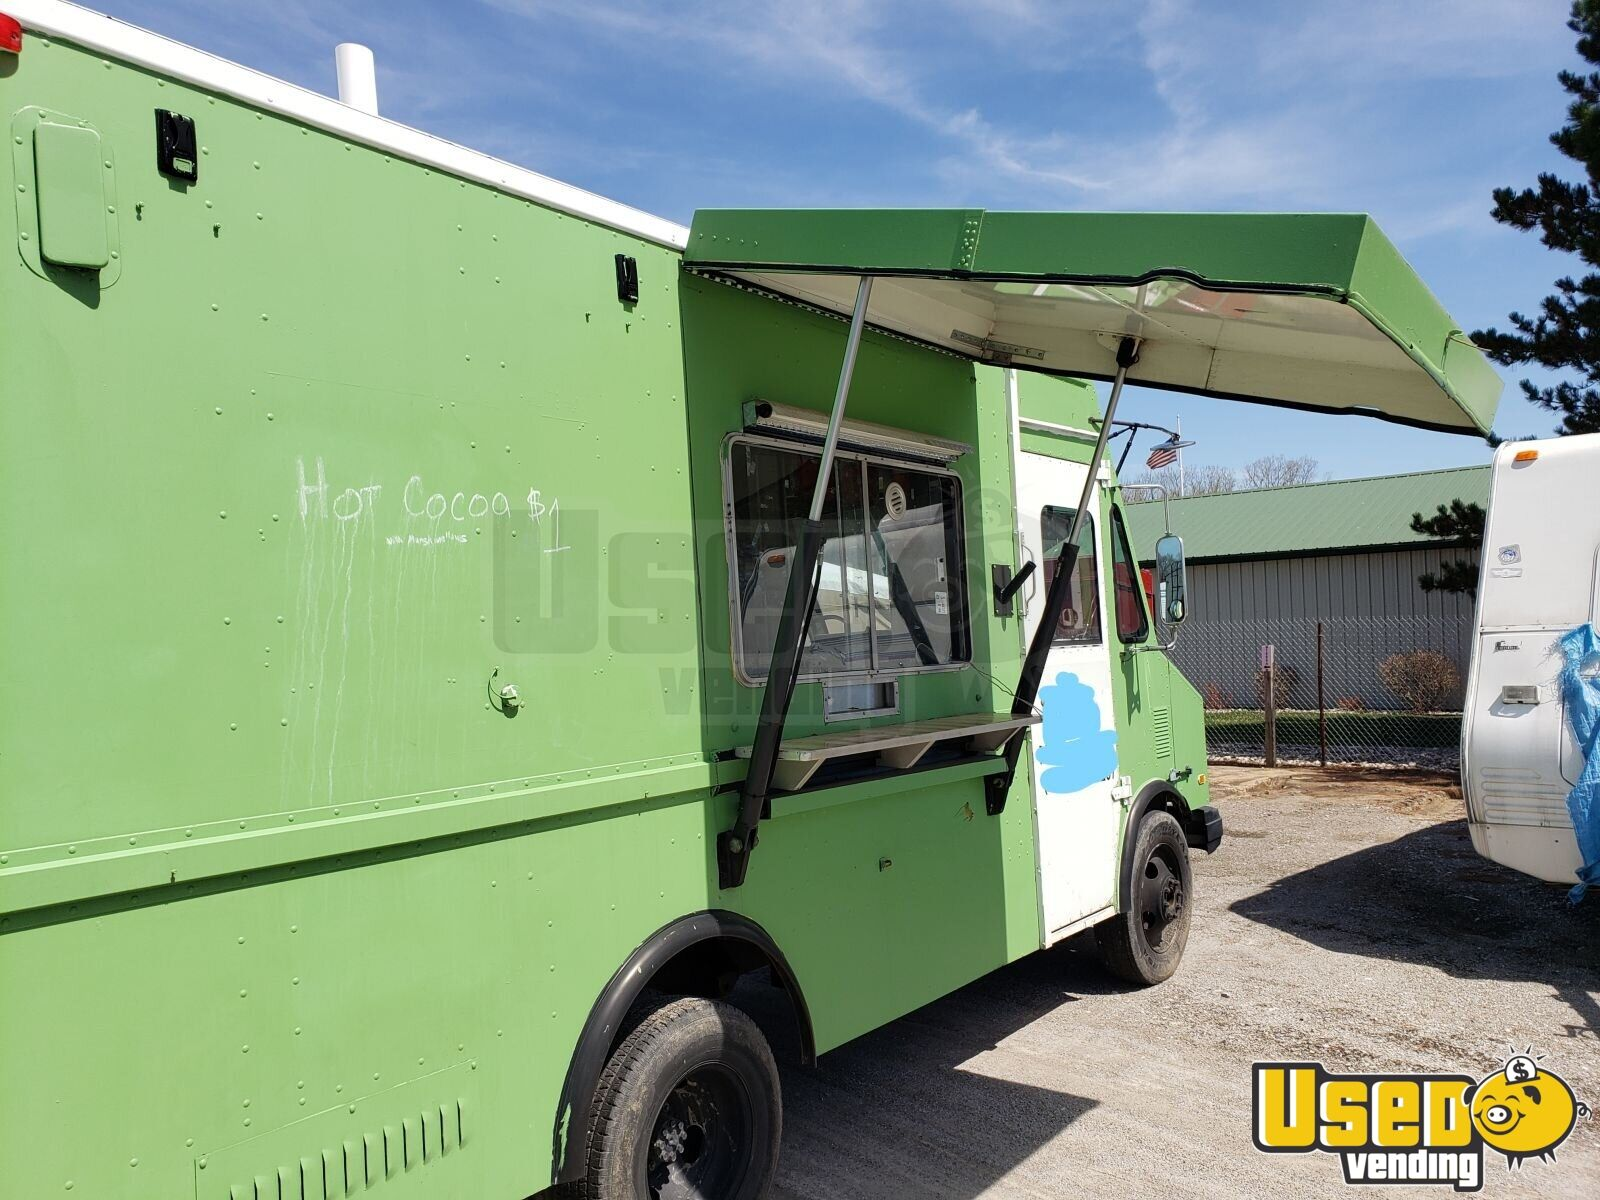 1995 Chevy P30 Utilimaster Food Truck Ohio Diesel Engine for Sale - 1